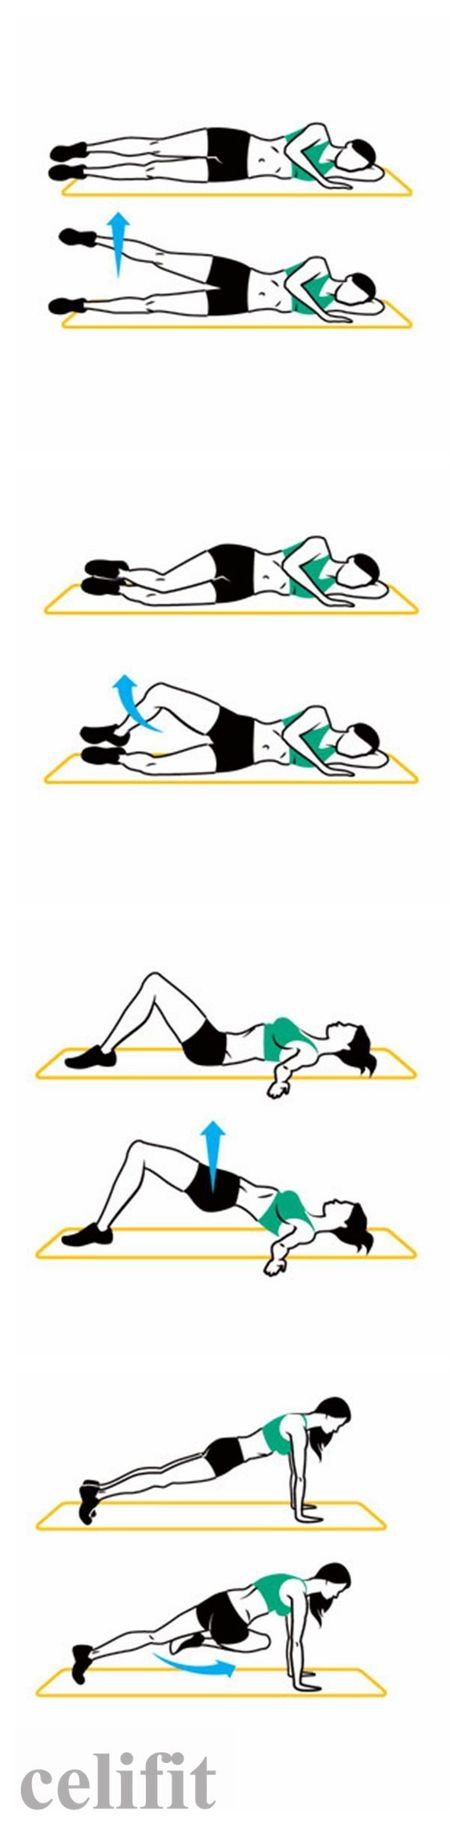 4 Workouts to Slim Your Legs and Butt / Healthy Weight Loss Tips   Healthy weight loss   Scoop.it